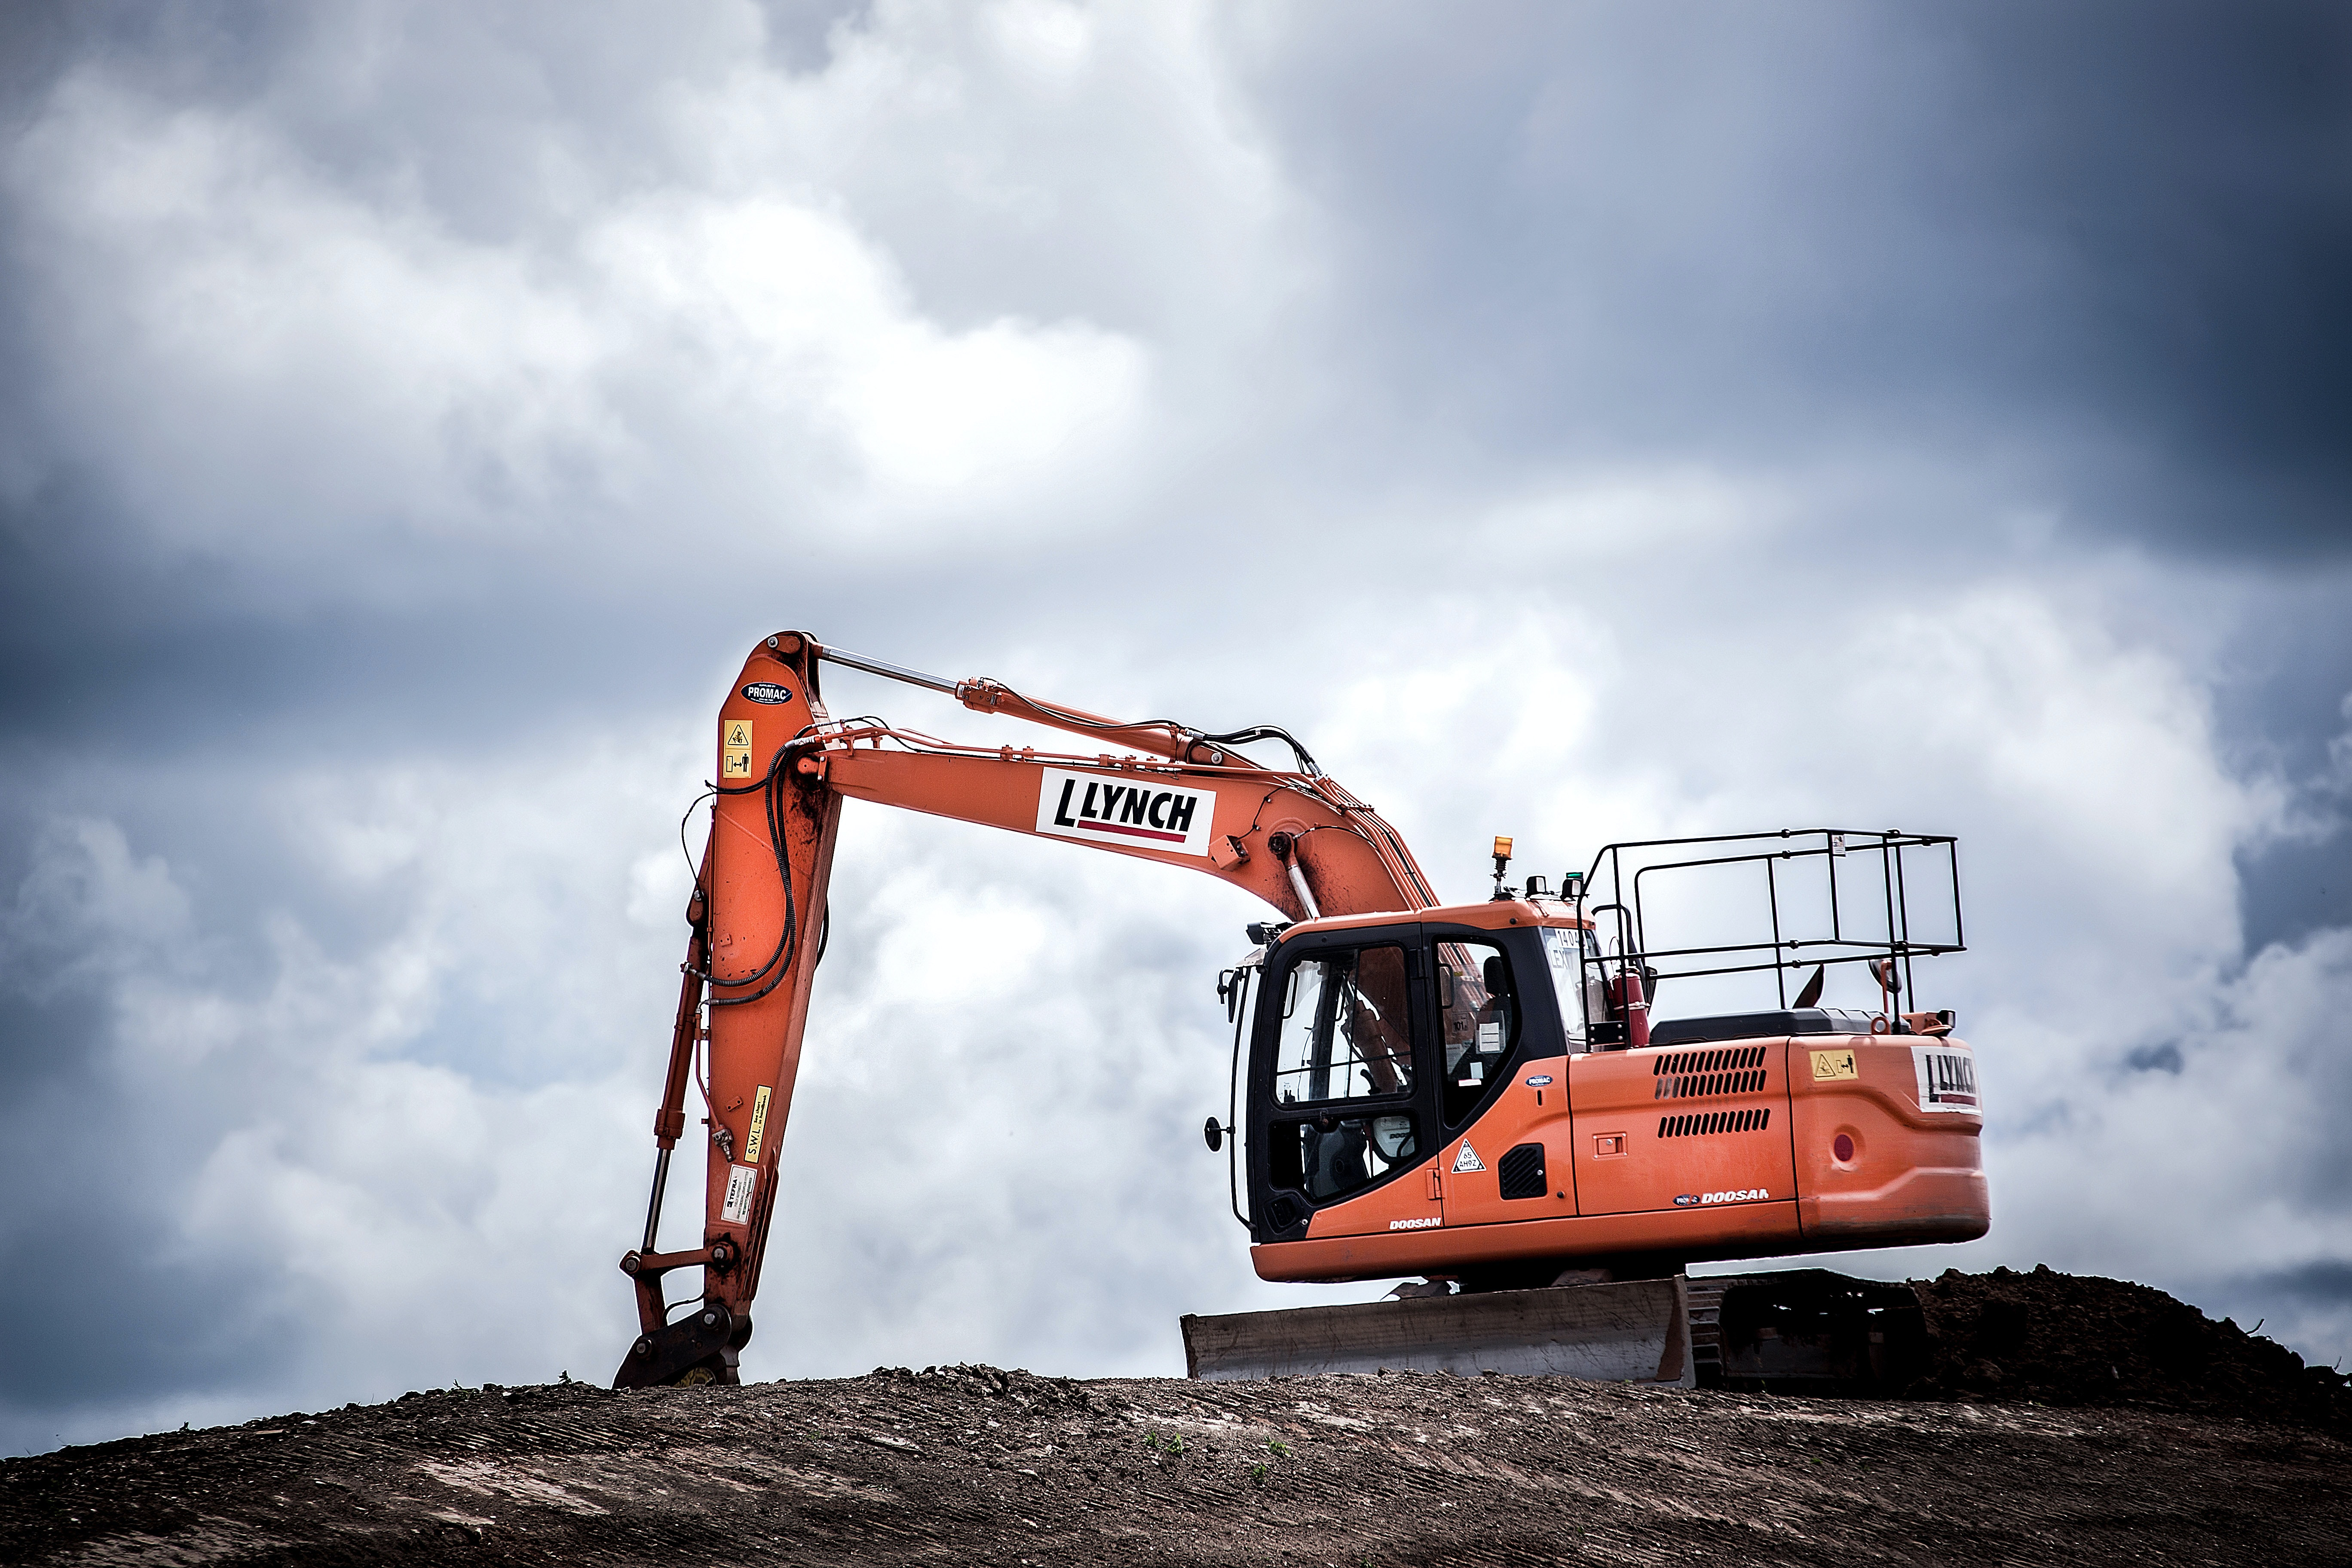 An orange excavator at a construction site